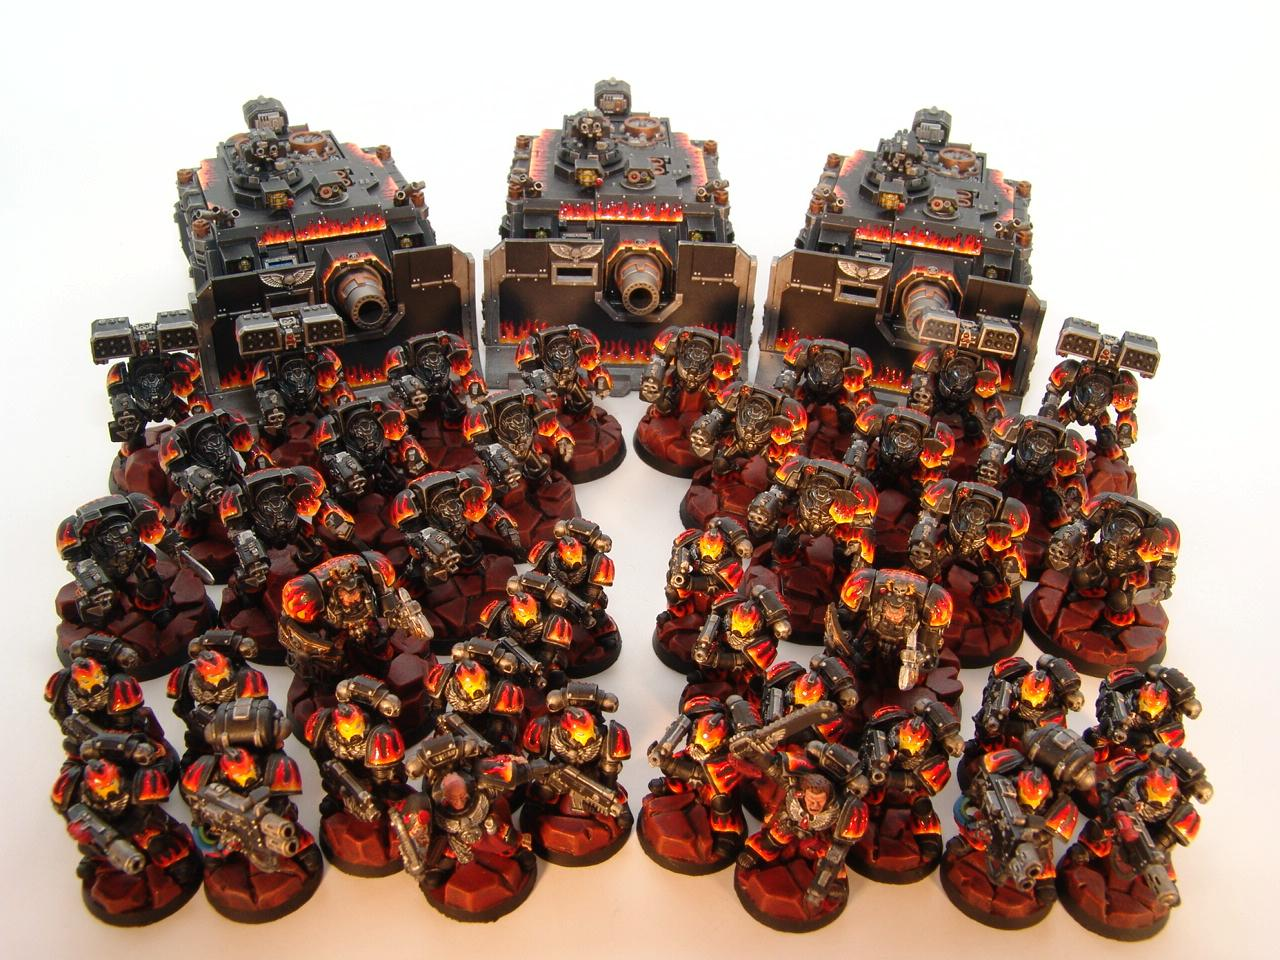 Flames, Infernus Chapter, Space Marines, Tactical, Terminator Armor, Vindicator, Warhammer 40,000